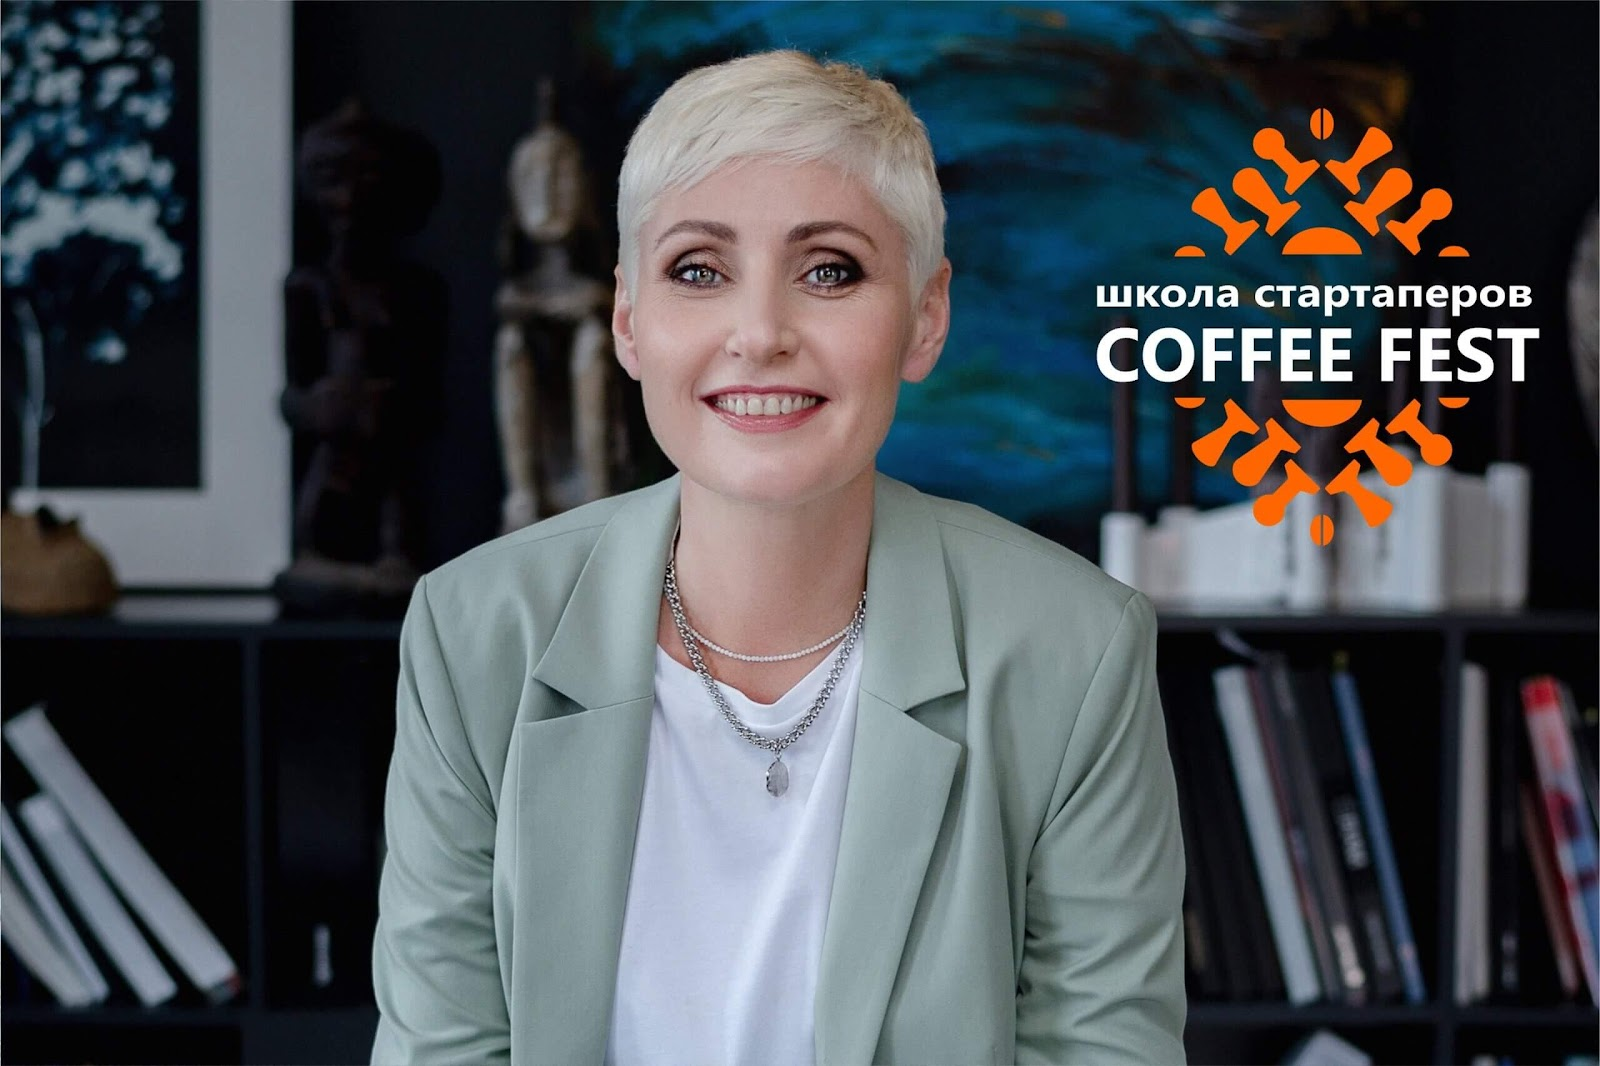 https://coffeefest.by/wp-content/uploads/2019/12/startup-scaled.jpg